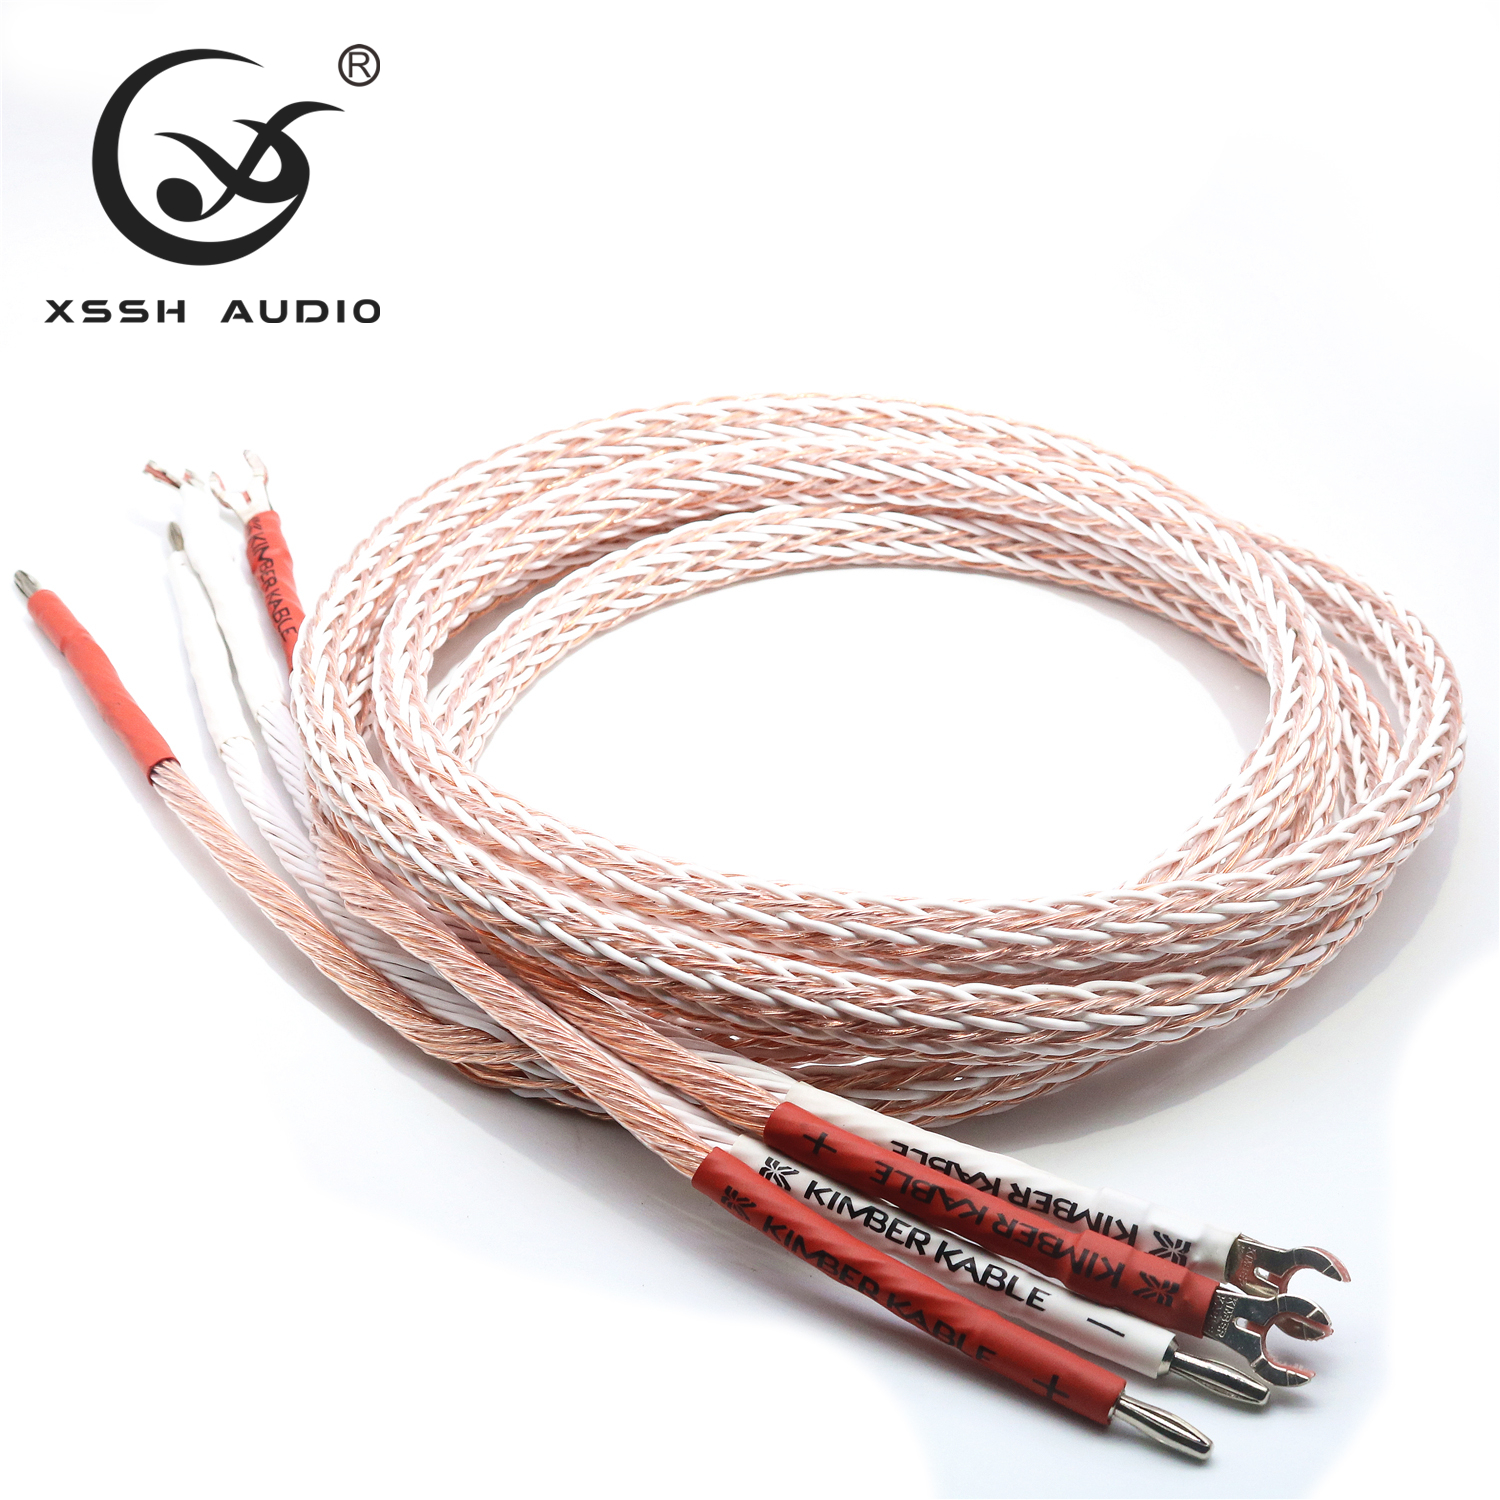 Image 3 - 1 pair XSSH audio Hi end DIY HIFI Silver Plated Y shape spade to  banana plugs 12TC 24 core speaker cable Cord Wire